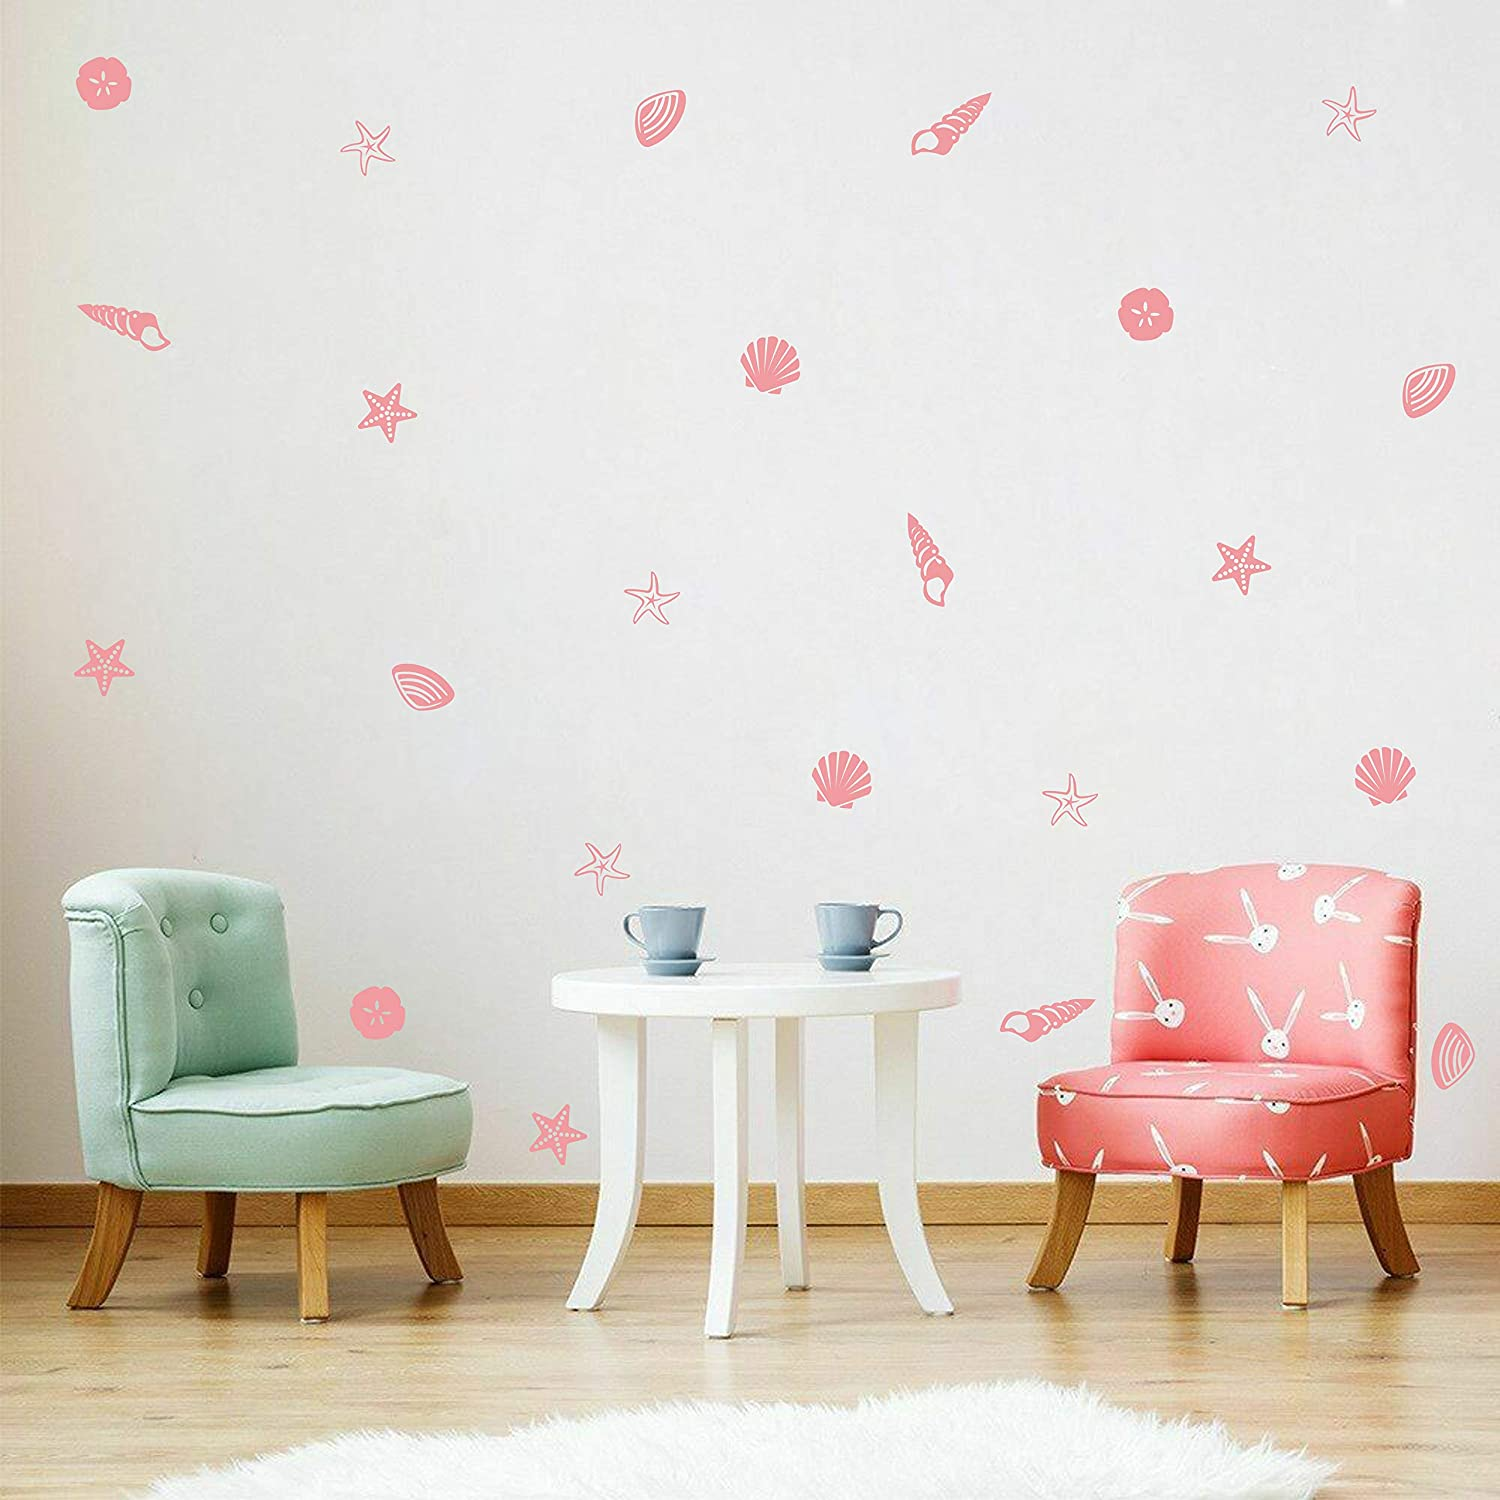 Sea Shell Wall Decals Scallop Shell Wall Decor Starfish Conch Wall Stickers Beach Theme Removable Stickers for Girls Nursery Room DDK16 (Pink)